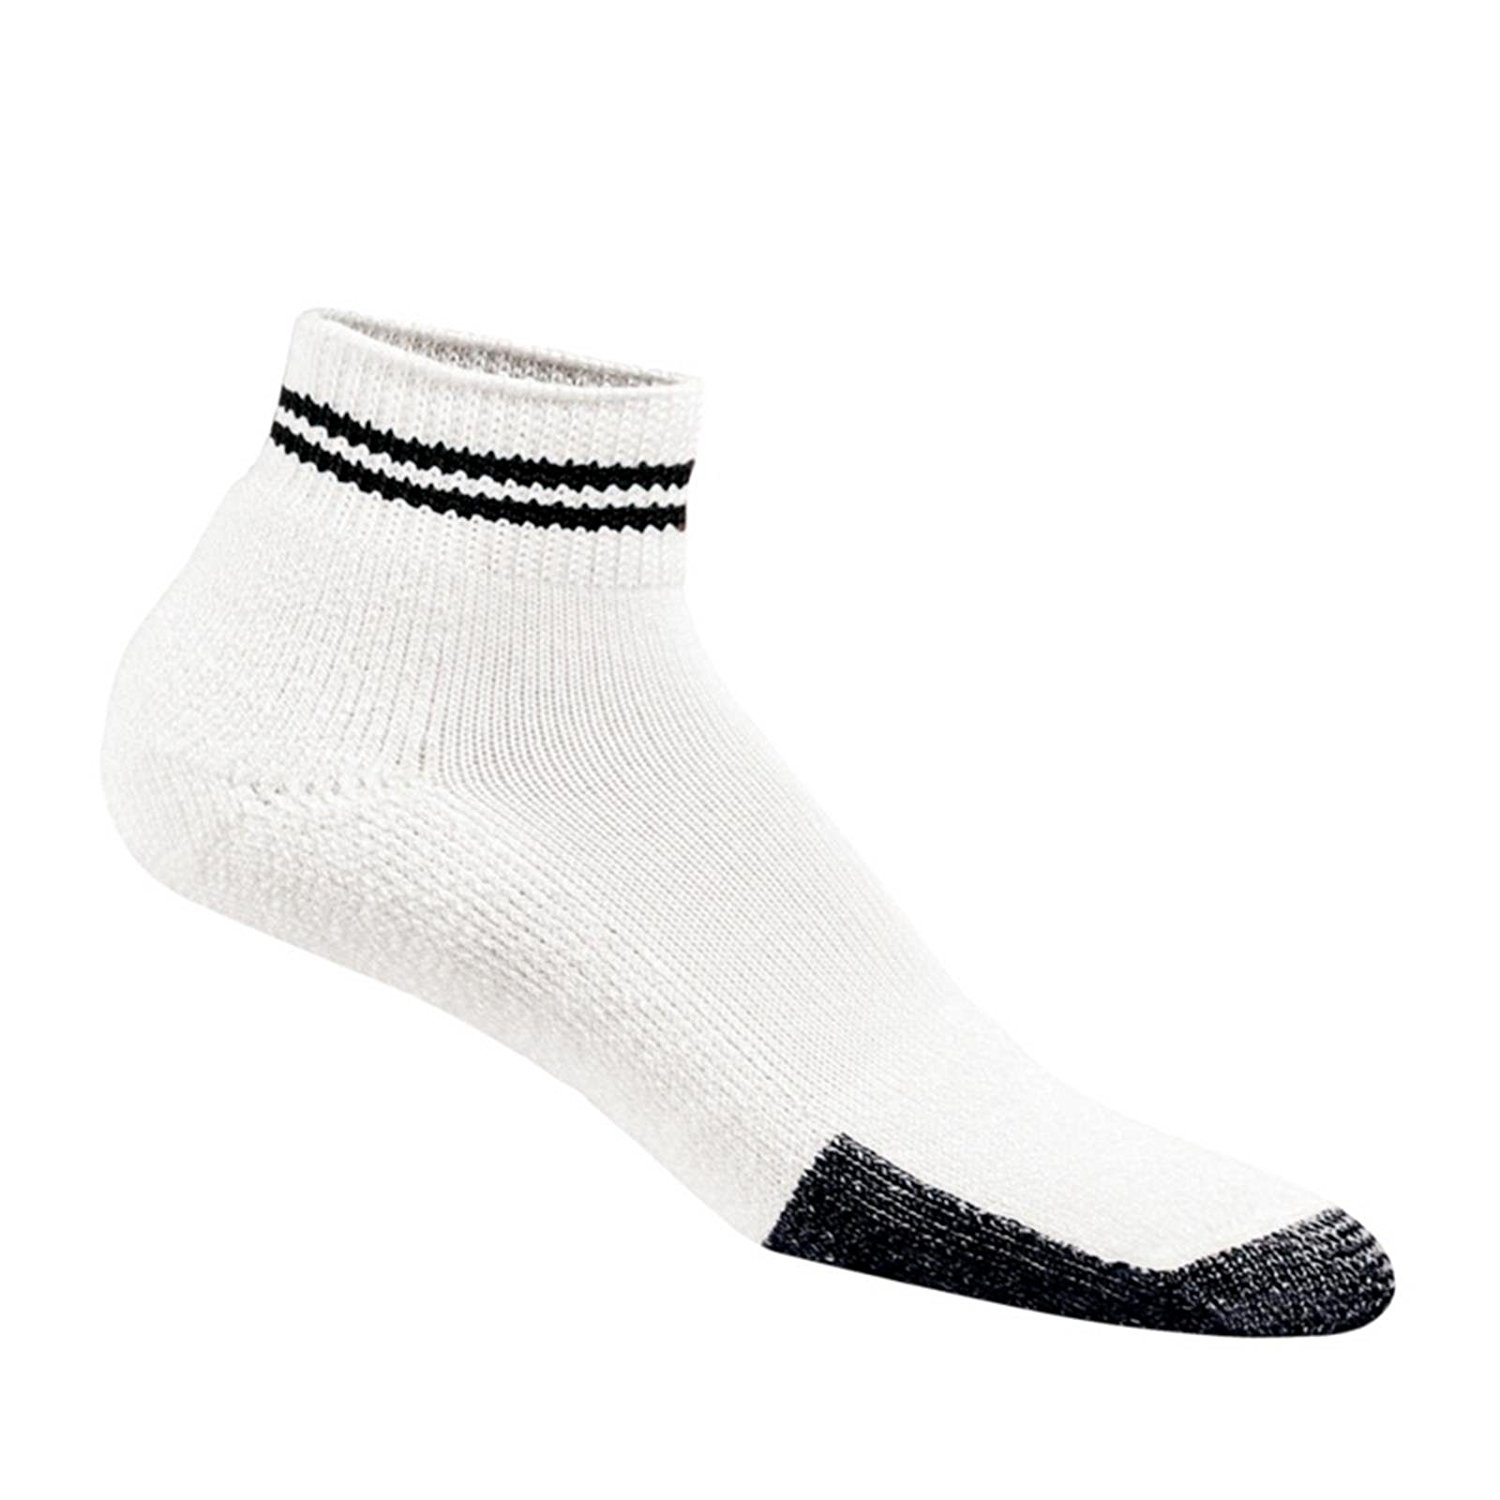 Thorlos Thick Cushion Tennis Crew with a Helicase Sock Ring